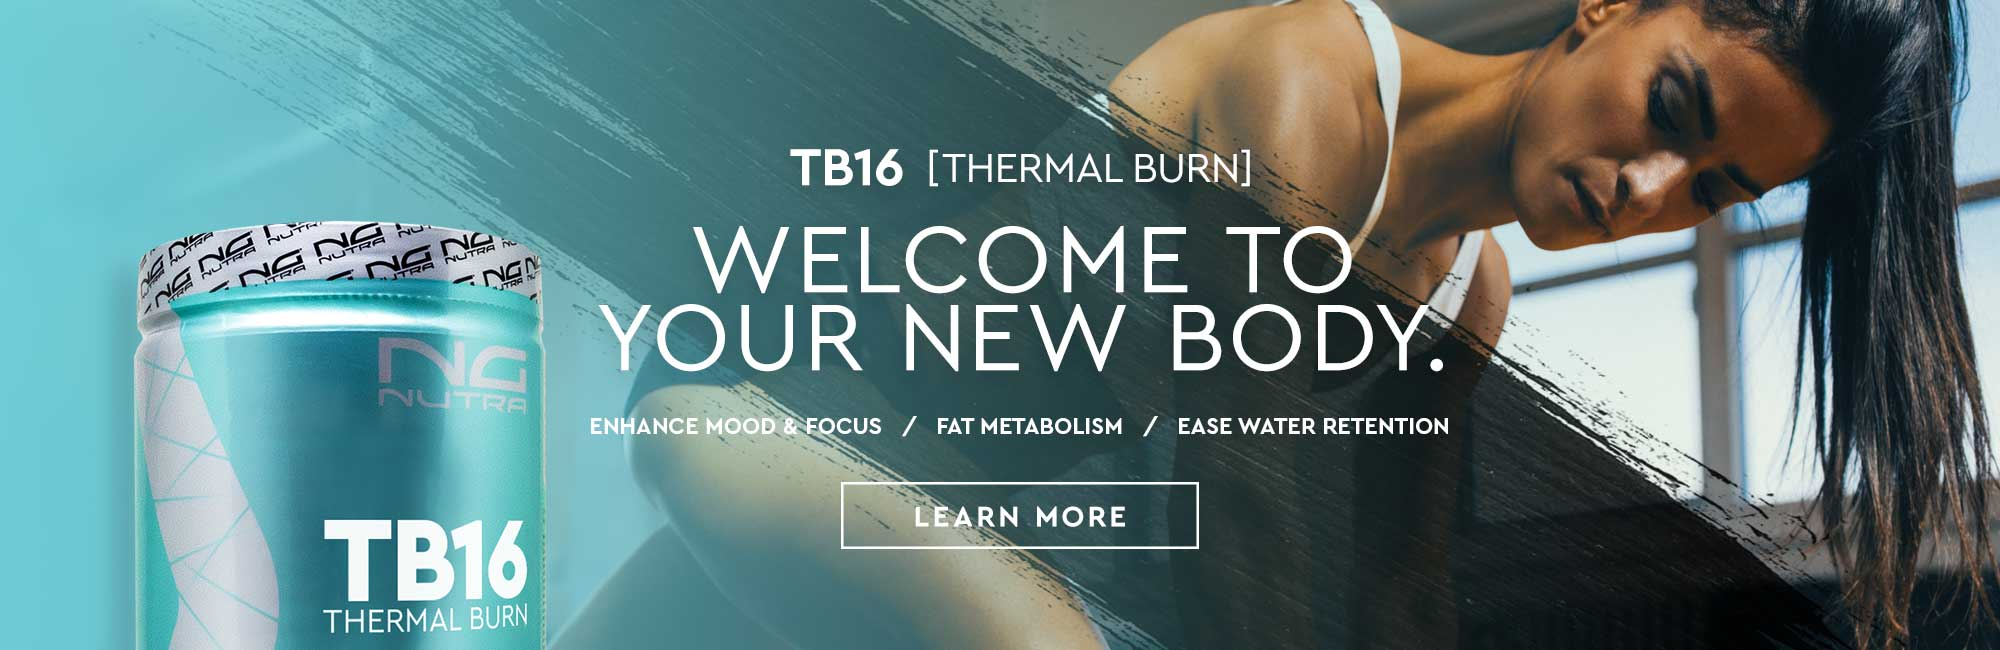 TB16 [Thermal Burn] Welcome To Your New Body.